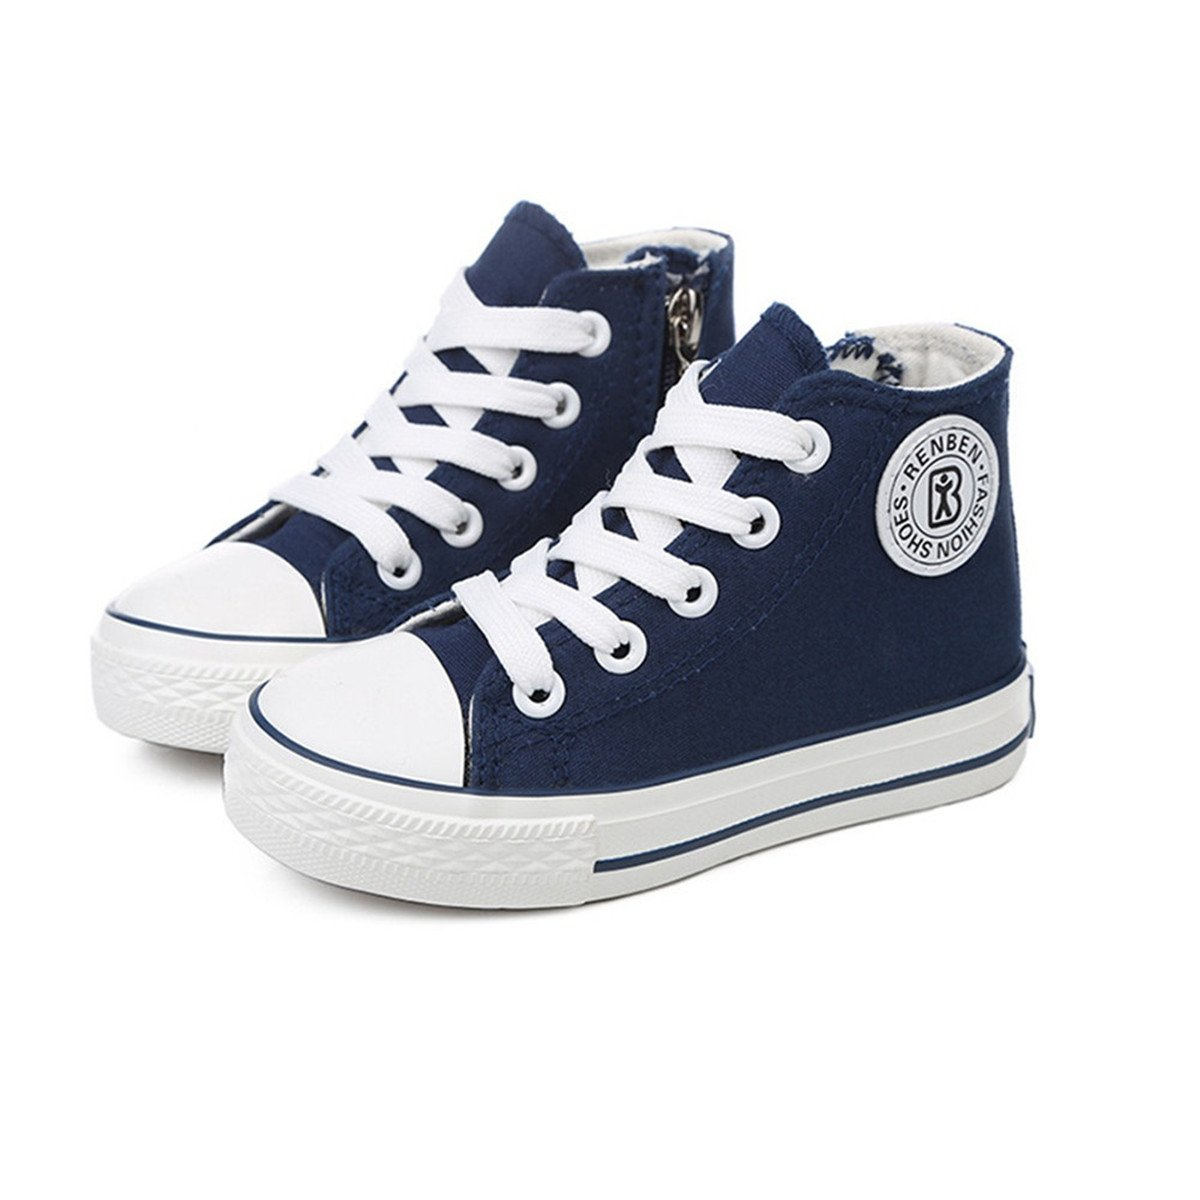 GZYIBU Kids Boys Girls Canvas High Top Gym Shoes Trainers Sneakers Toddler  Little Kid  Big Kid   Blue  13 M US Little Kid